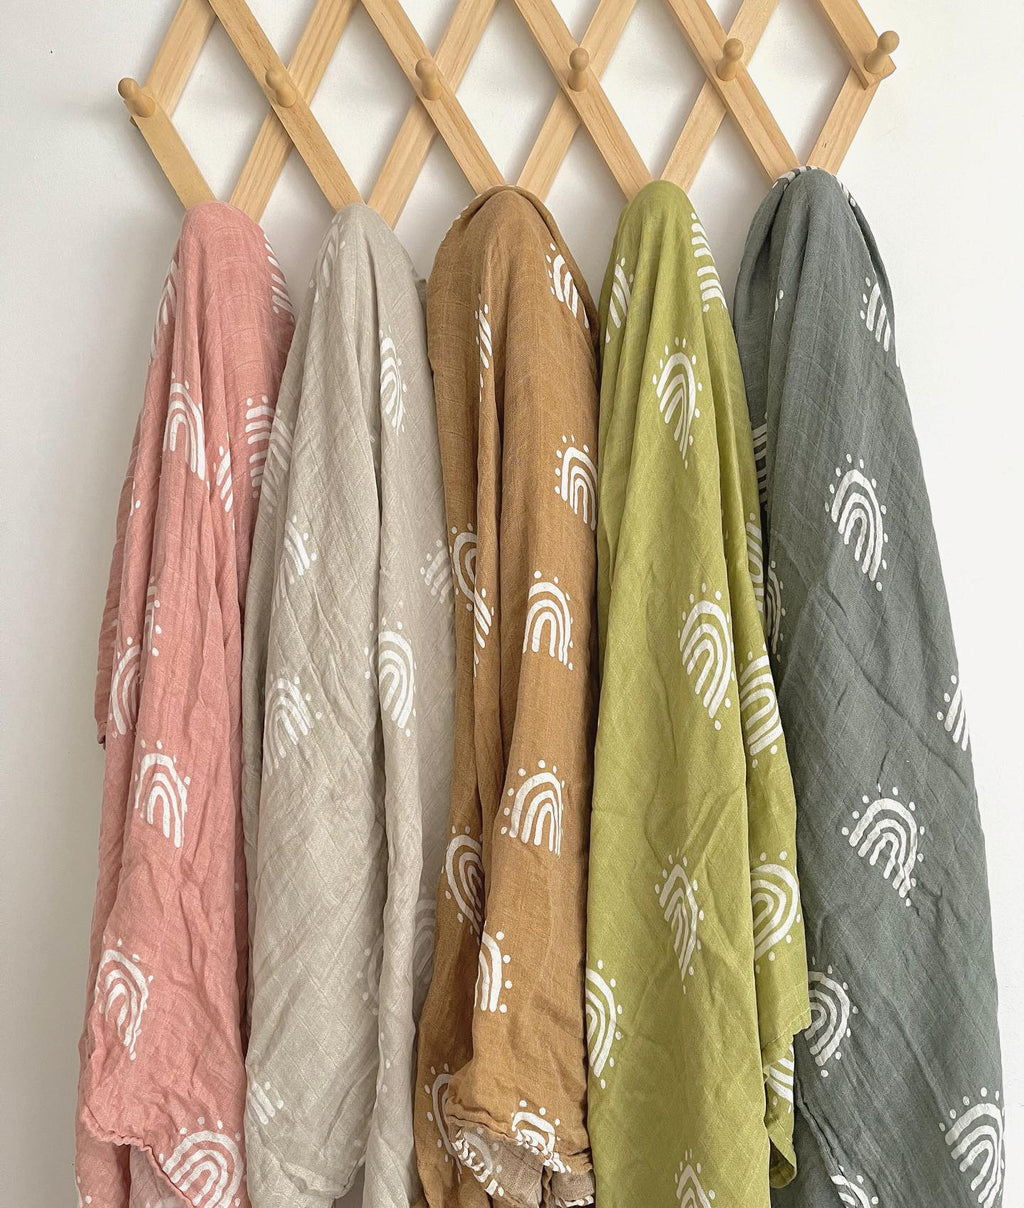 Bamboo Muslin - Over the Rainbow Olive